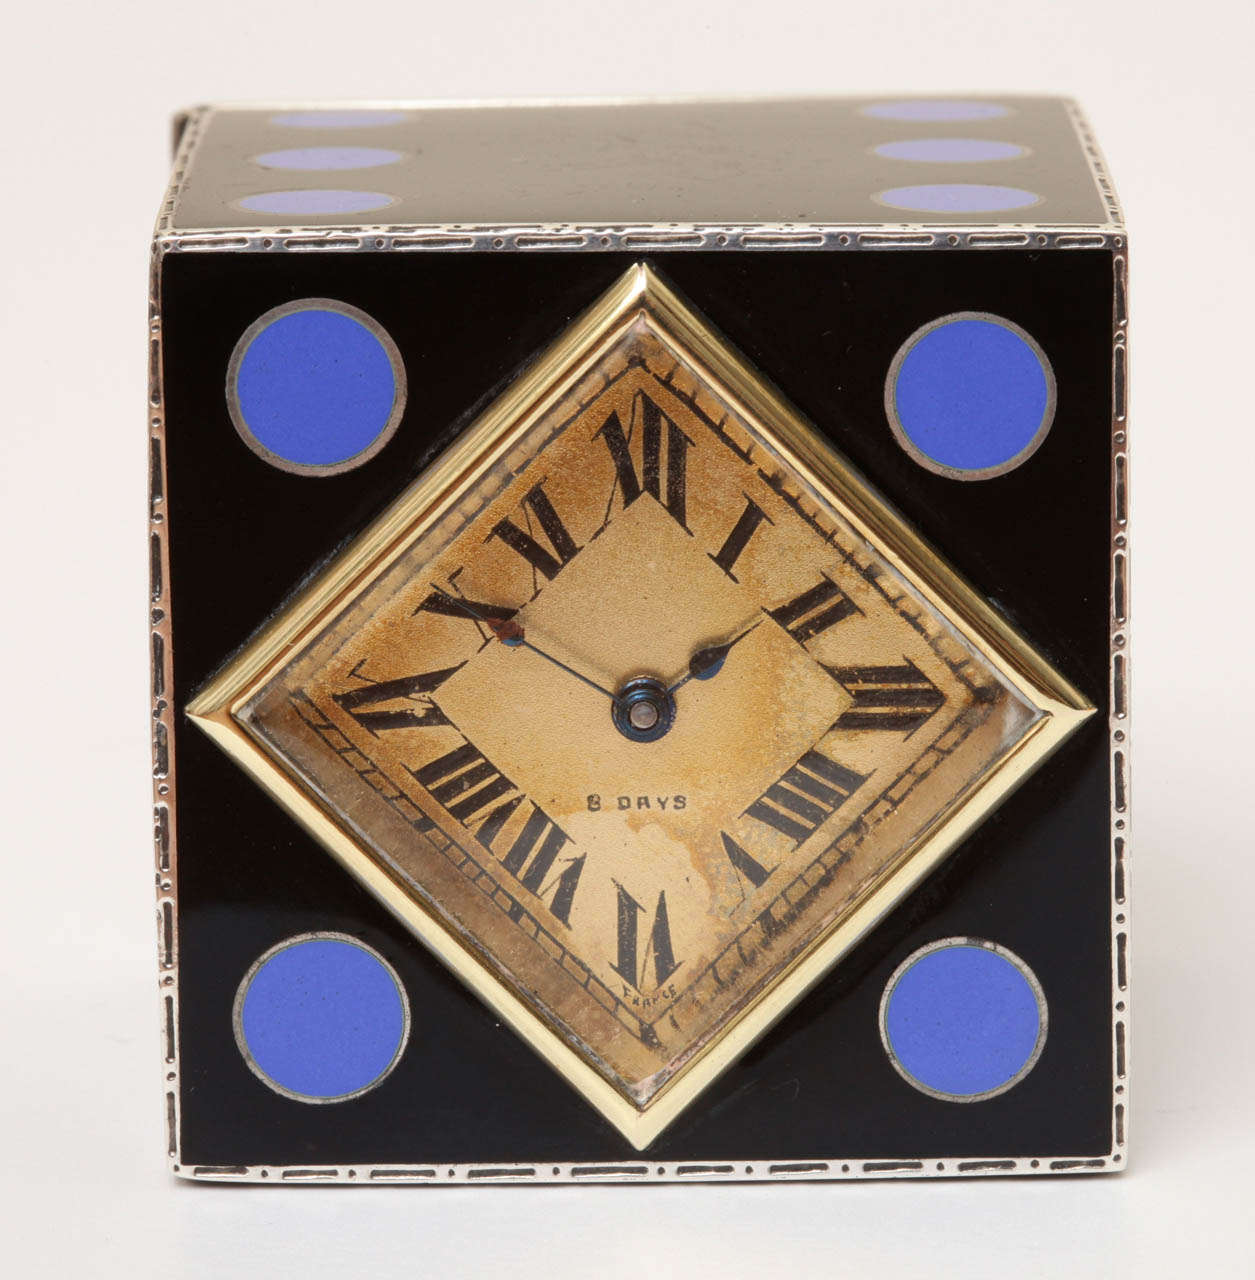 Art Deco Enamel Clock by J.E. Caldwell In Excellent Condition For Sale In New York, NY